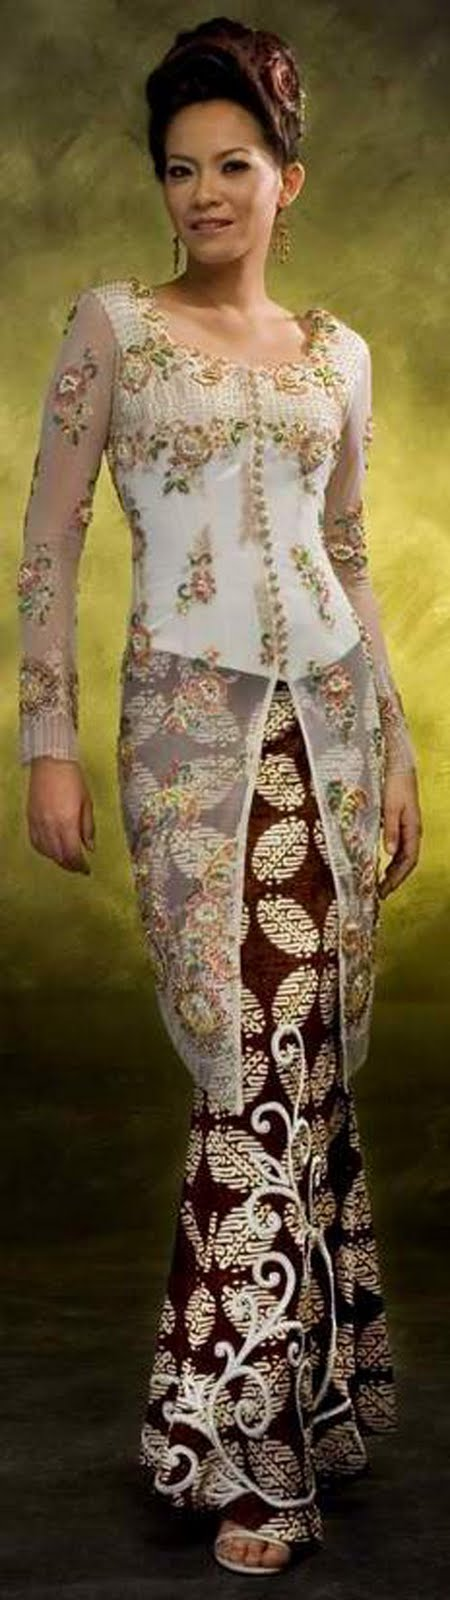 Modern Kebaya, Fashion show women